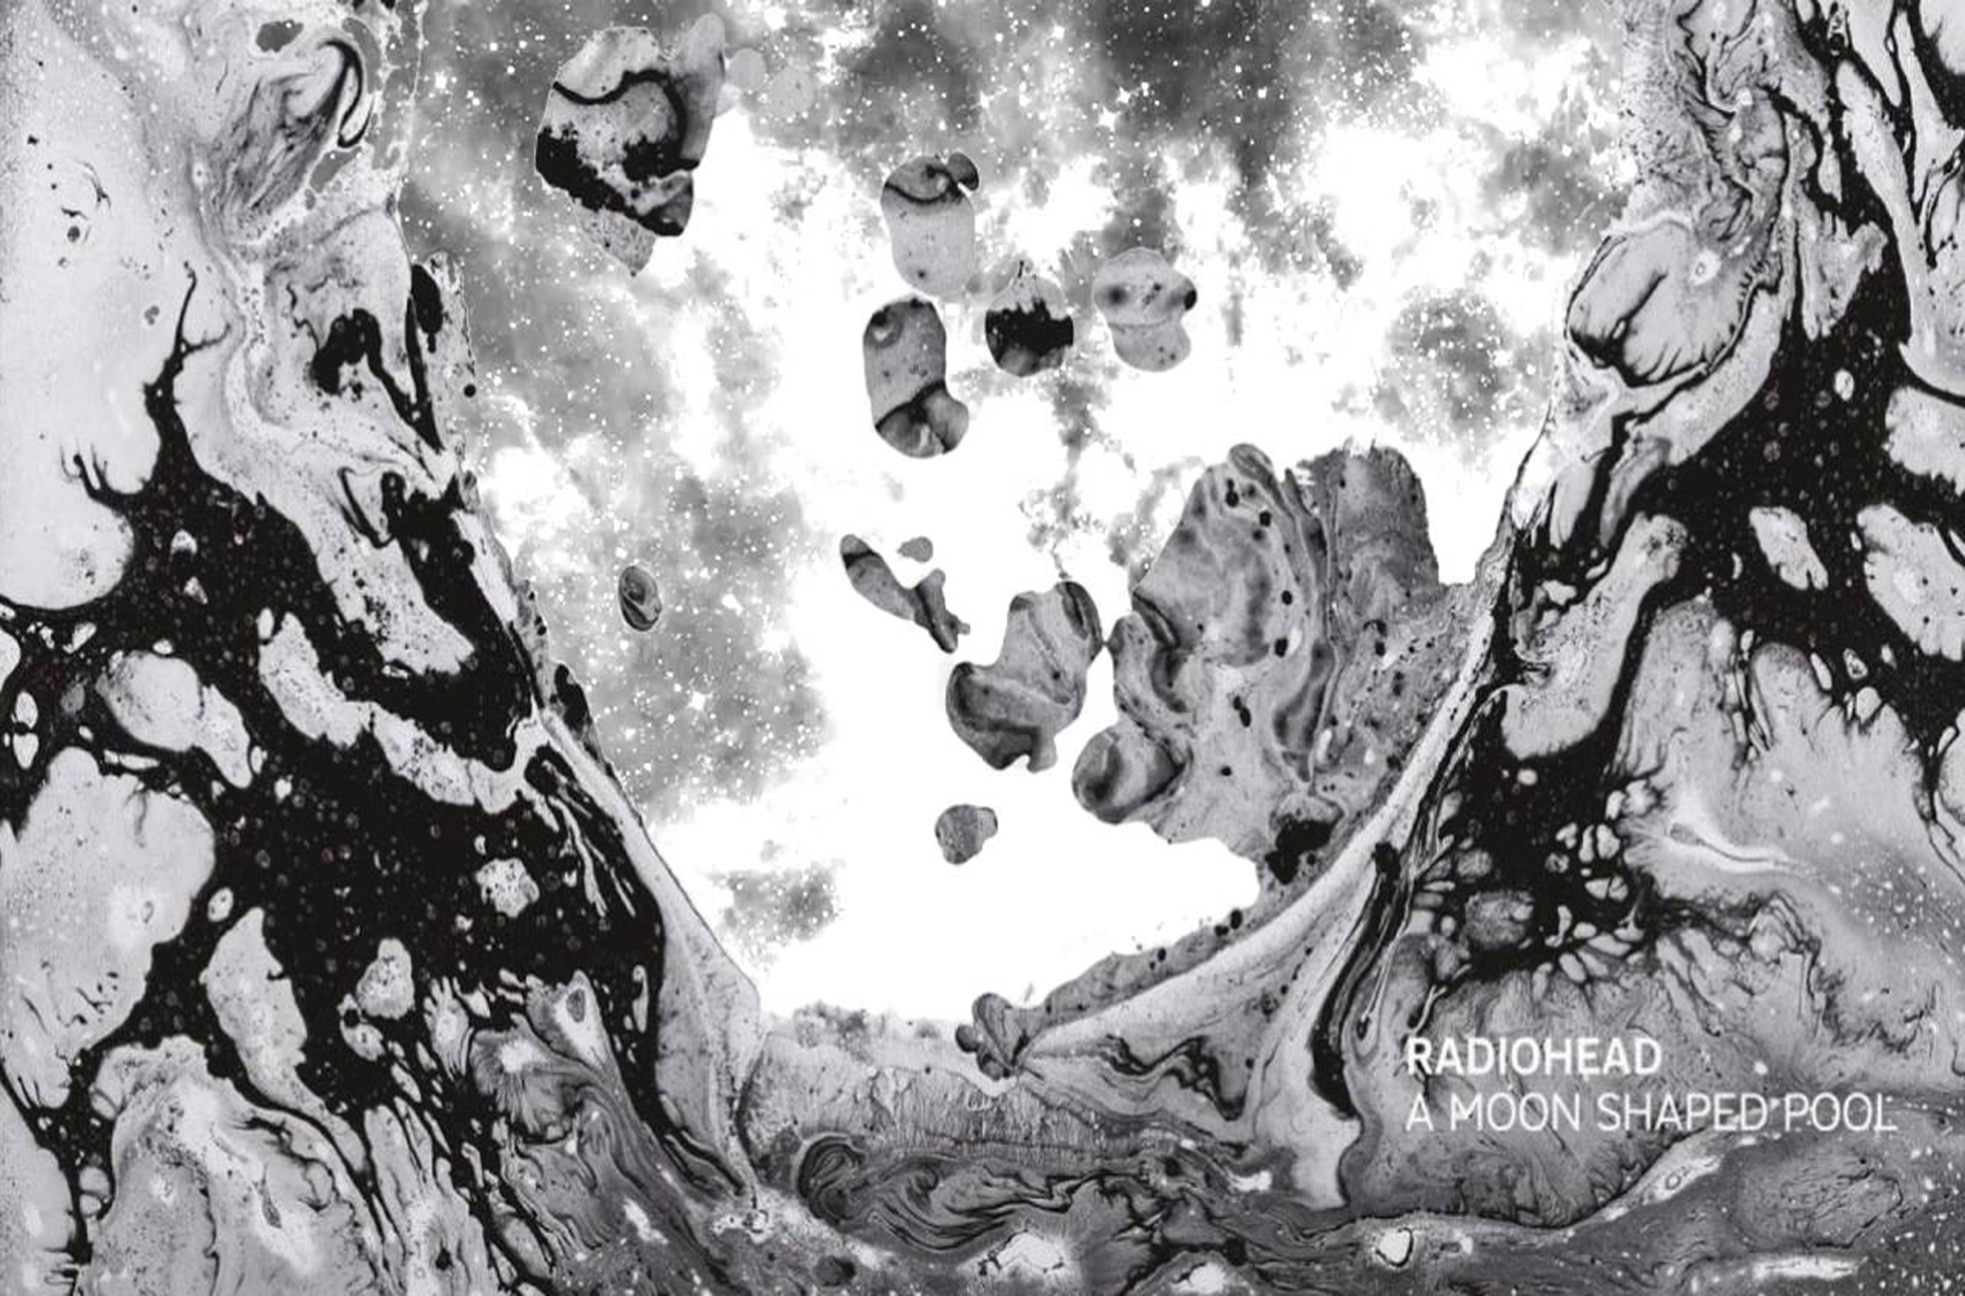 A Moon Shaped Pool. Radiohead